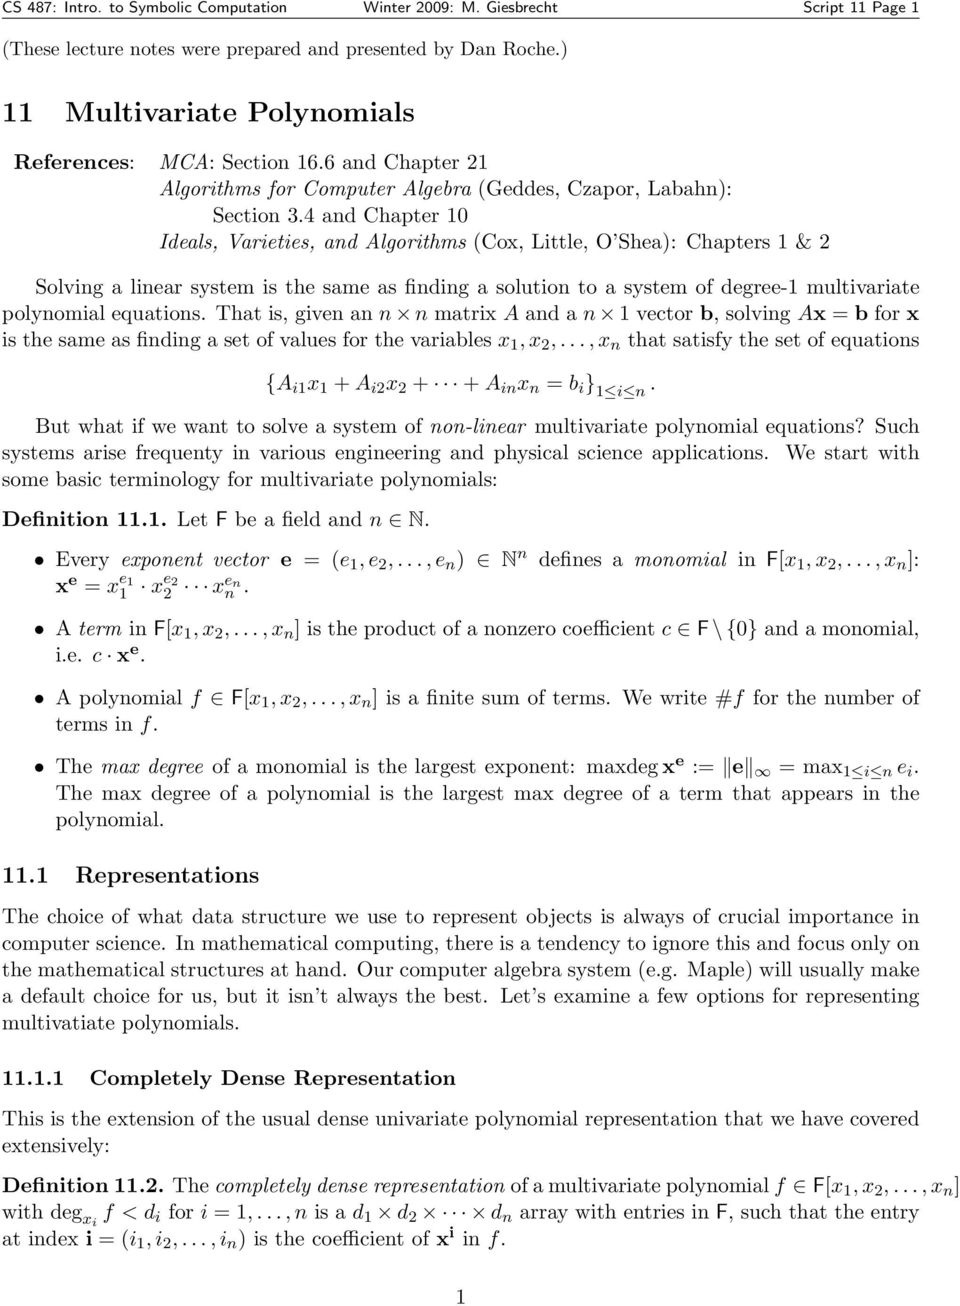 4 and Chapter 10 Ideals, Varieties, and lgorithms (Cox, Little, O Shea): Chapters 1 & 2 Solving a linear system is the same as finding a solution to a system of degree-1 multivariate polynomial